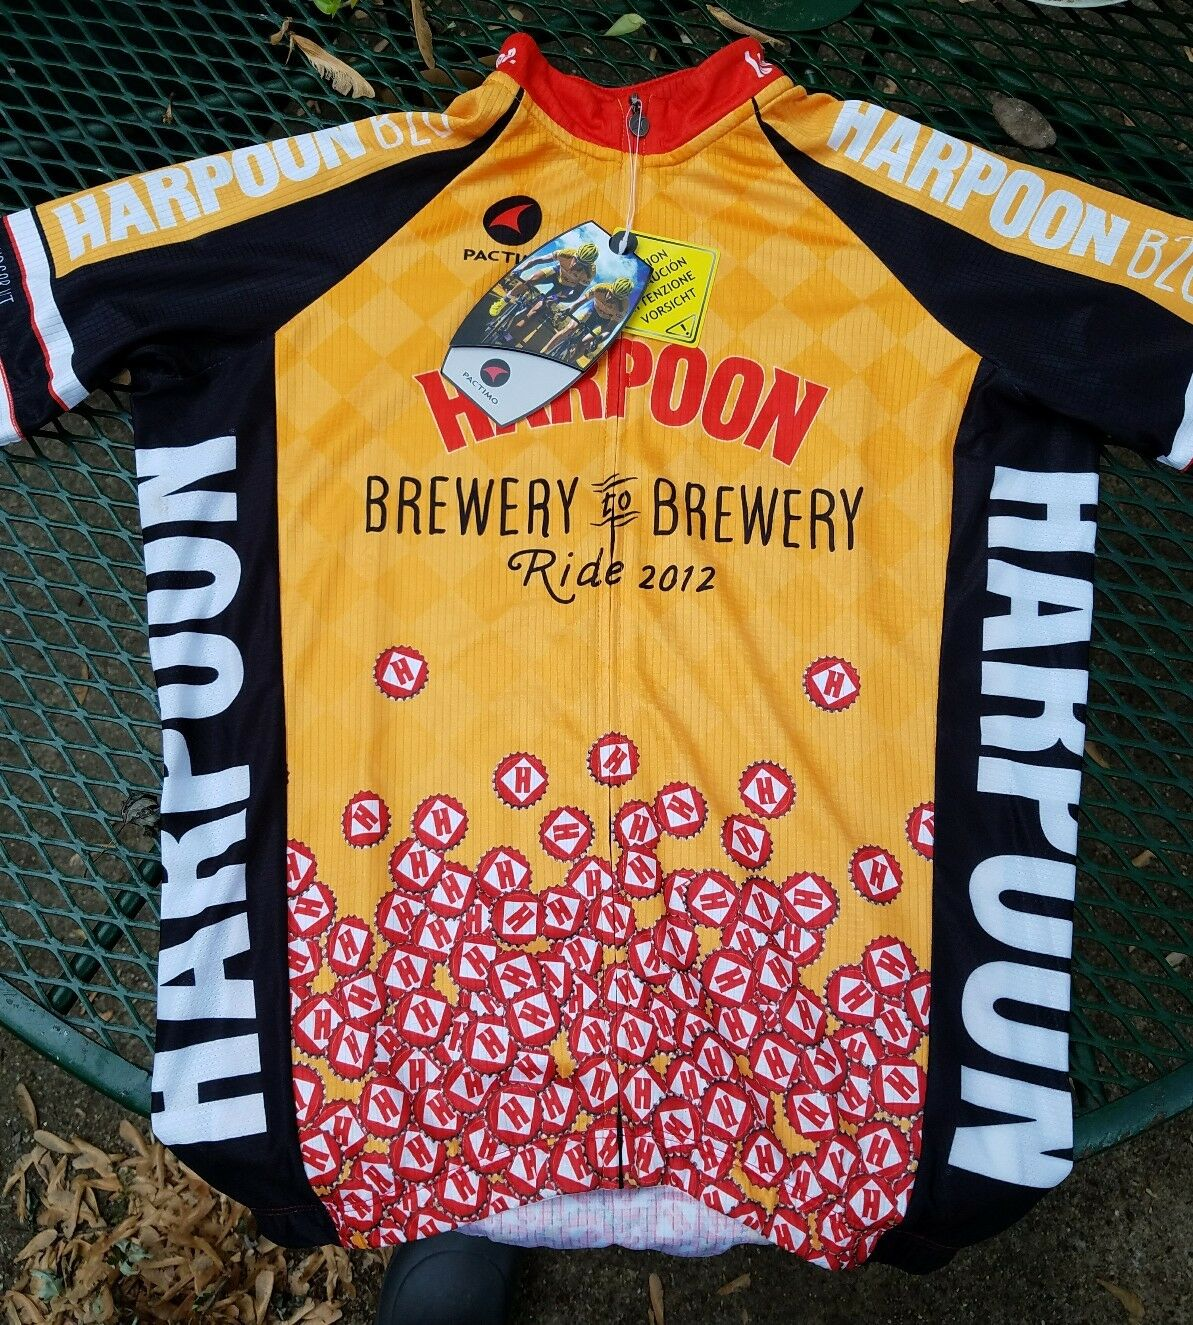 New Harpoon Brewery To Brewery Ride 2012 Cycling Jersey Pactimo Mens Small